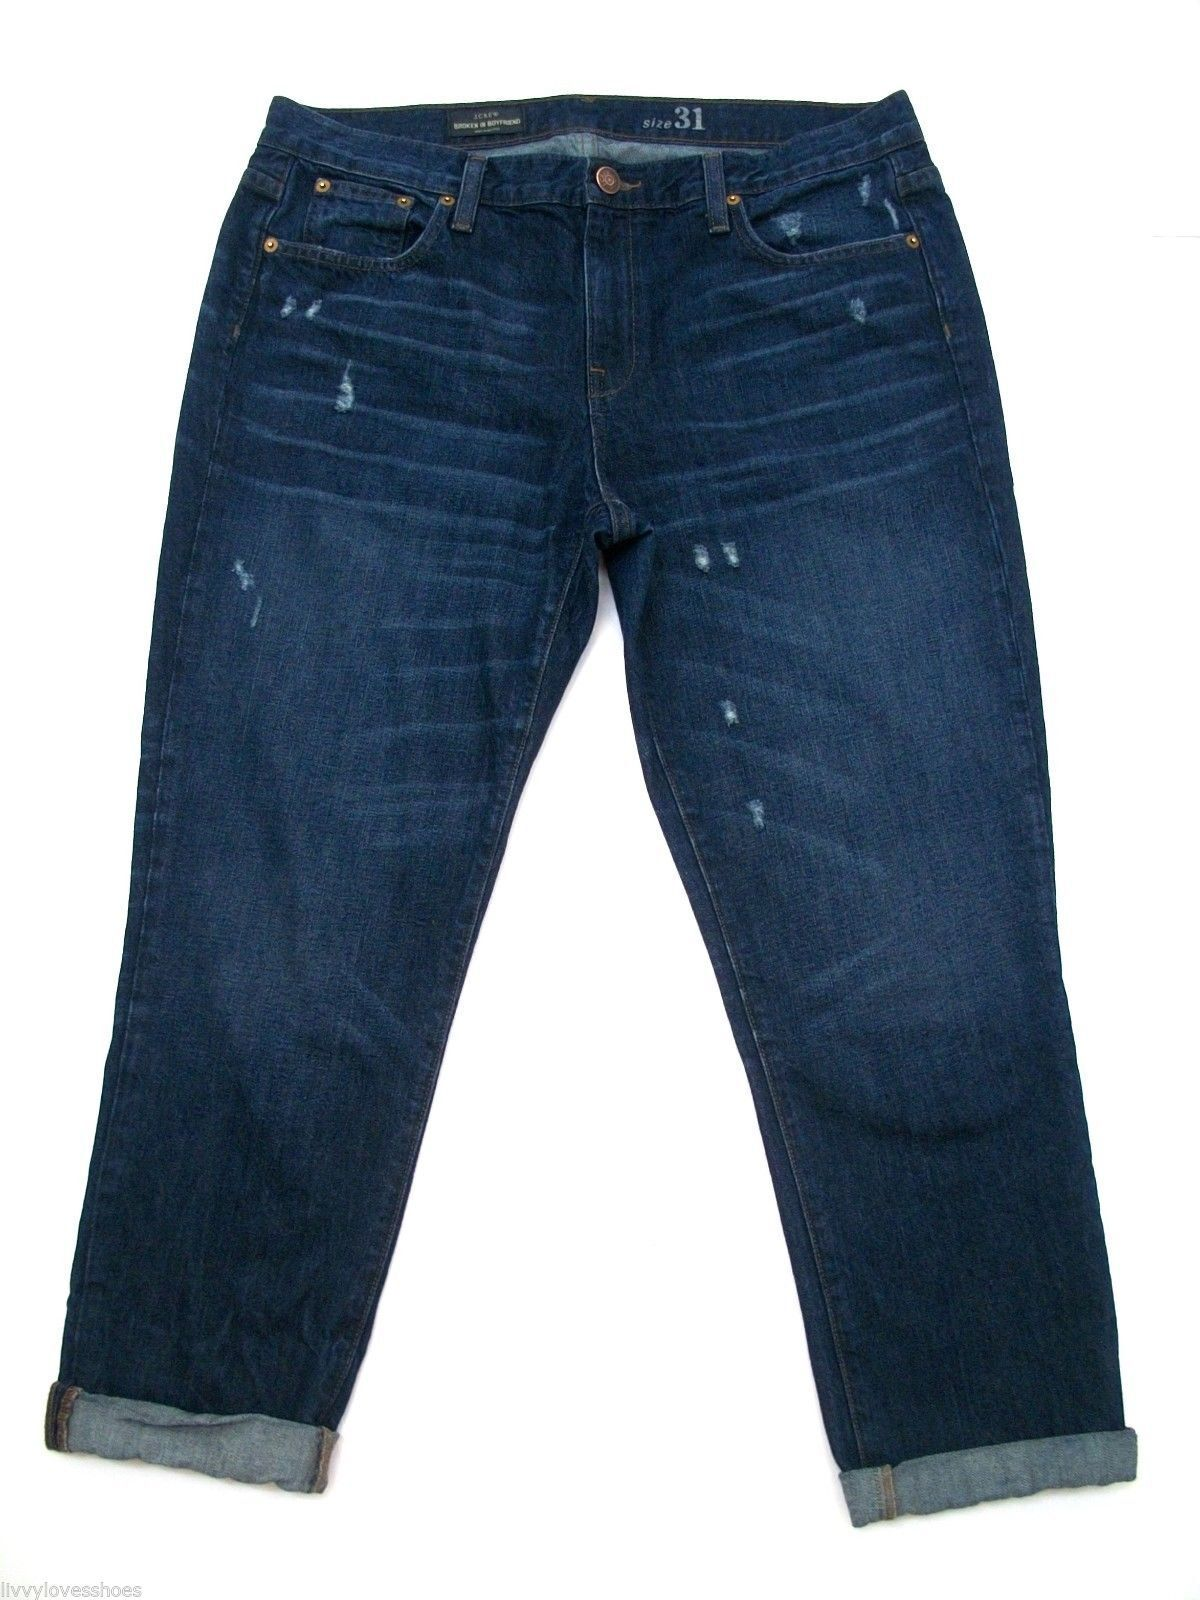 These low waist boyfriend jeans are comfortable and amazingly versatile. KUT from the Kloth Women's Catherine Boyfriend Jean. by KUT from the Kloth. $ $ 89 00 Prime. FREE Shipping on eligible orders. Some sizes/colors are Prime eligible. out of 5 stars Product Features.